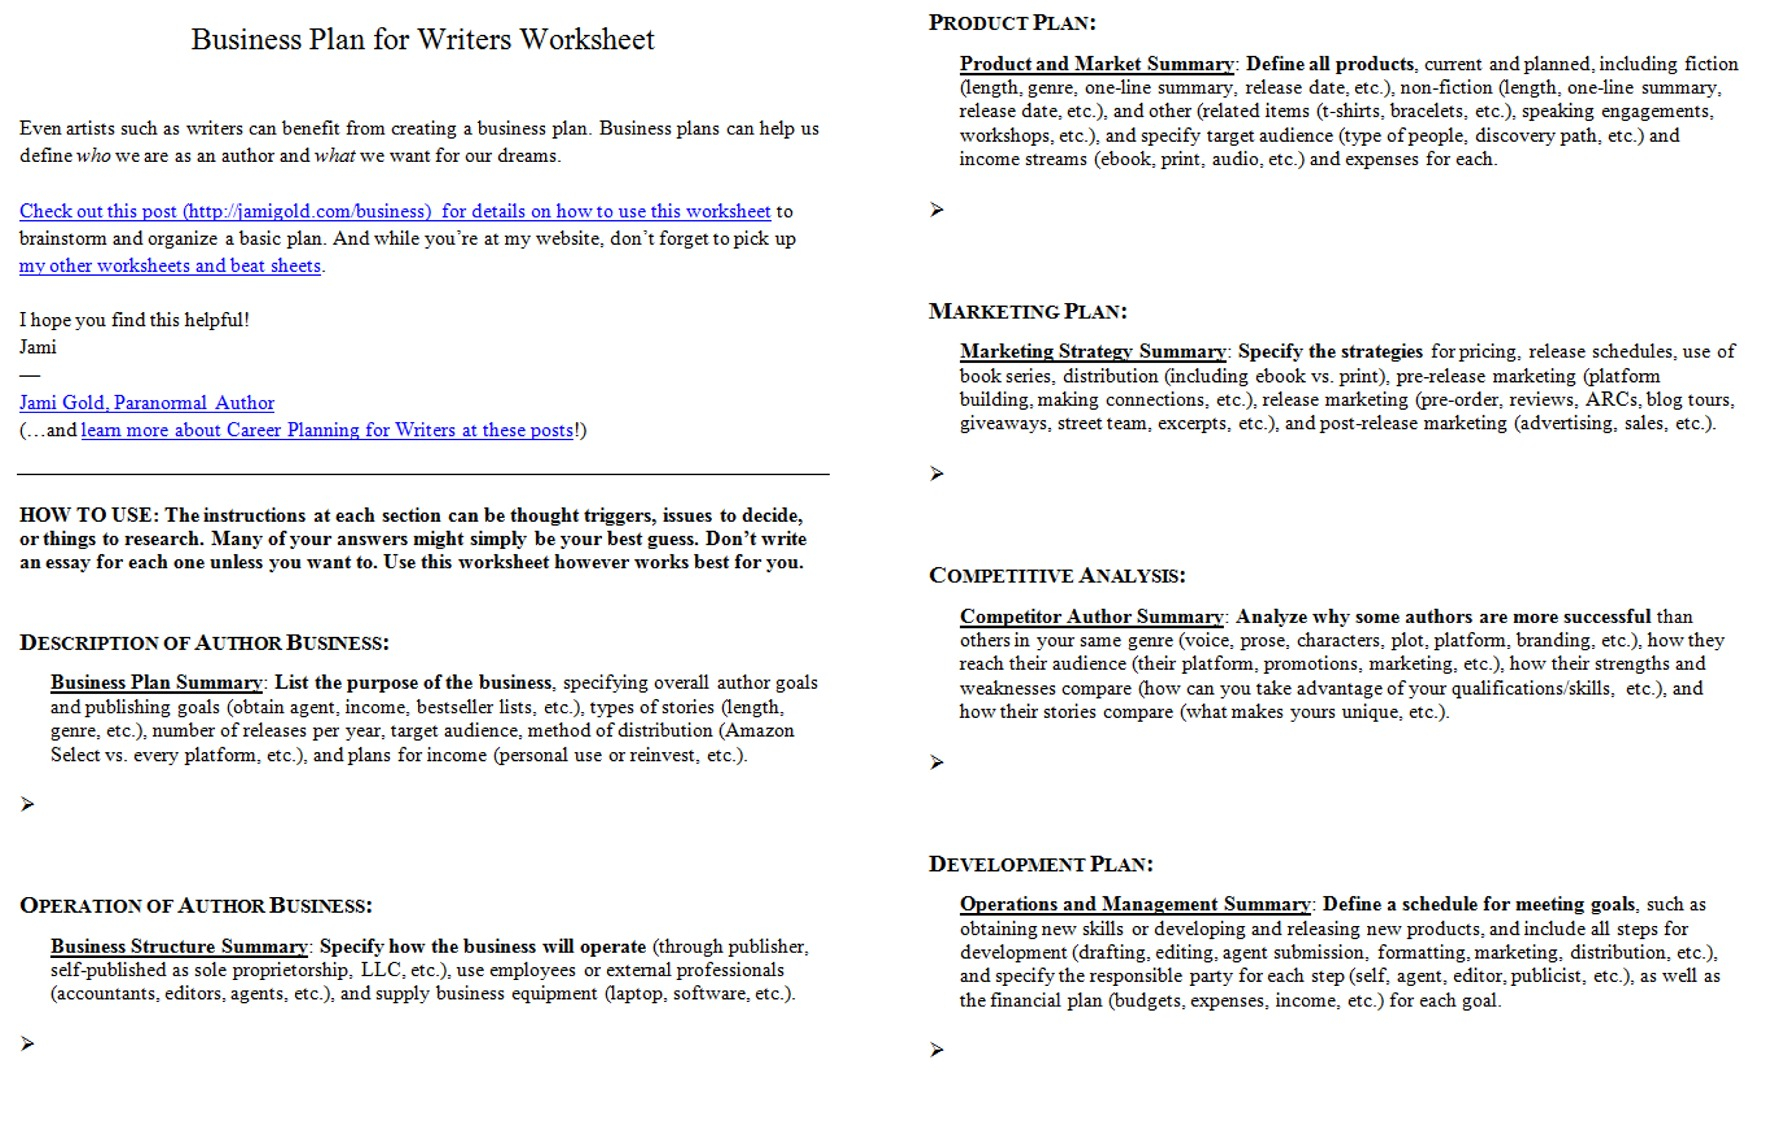 Proatmealus  Personable Worksheets For Writers  Jami Gold Paranormal Author With Lovely Screen Shot Of Both Pages Of The Business Plan For Writers Worksheet With Comely Linear And Nonlinear Functions Worksheet Also Worksheet For Scientific Method In Addition Teaching Transparency Worksheet The Activity Series Answers And Pre Writing Activities Worksheets As Well As Free Sixth Grade Worksheets Additionally Printable Multiplying Fractions Worksheets From Jamigoldcom With Proatmealus  Lovely Worksheets For Writers  Jami Gold Paranormal Author With Comely Screen Shot Of Both Pages Of The Business Plan For Writers Worksheet And Personable Linear And Nonlinear Functions Worksheet Also Worksheet For Scientific Method In Addition Teaching Transparency Worksheet The Activity Series Answers From Jamigoldcom